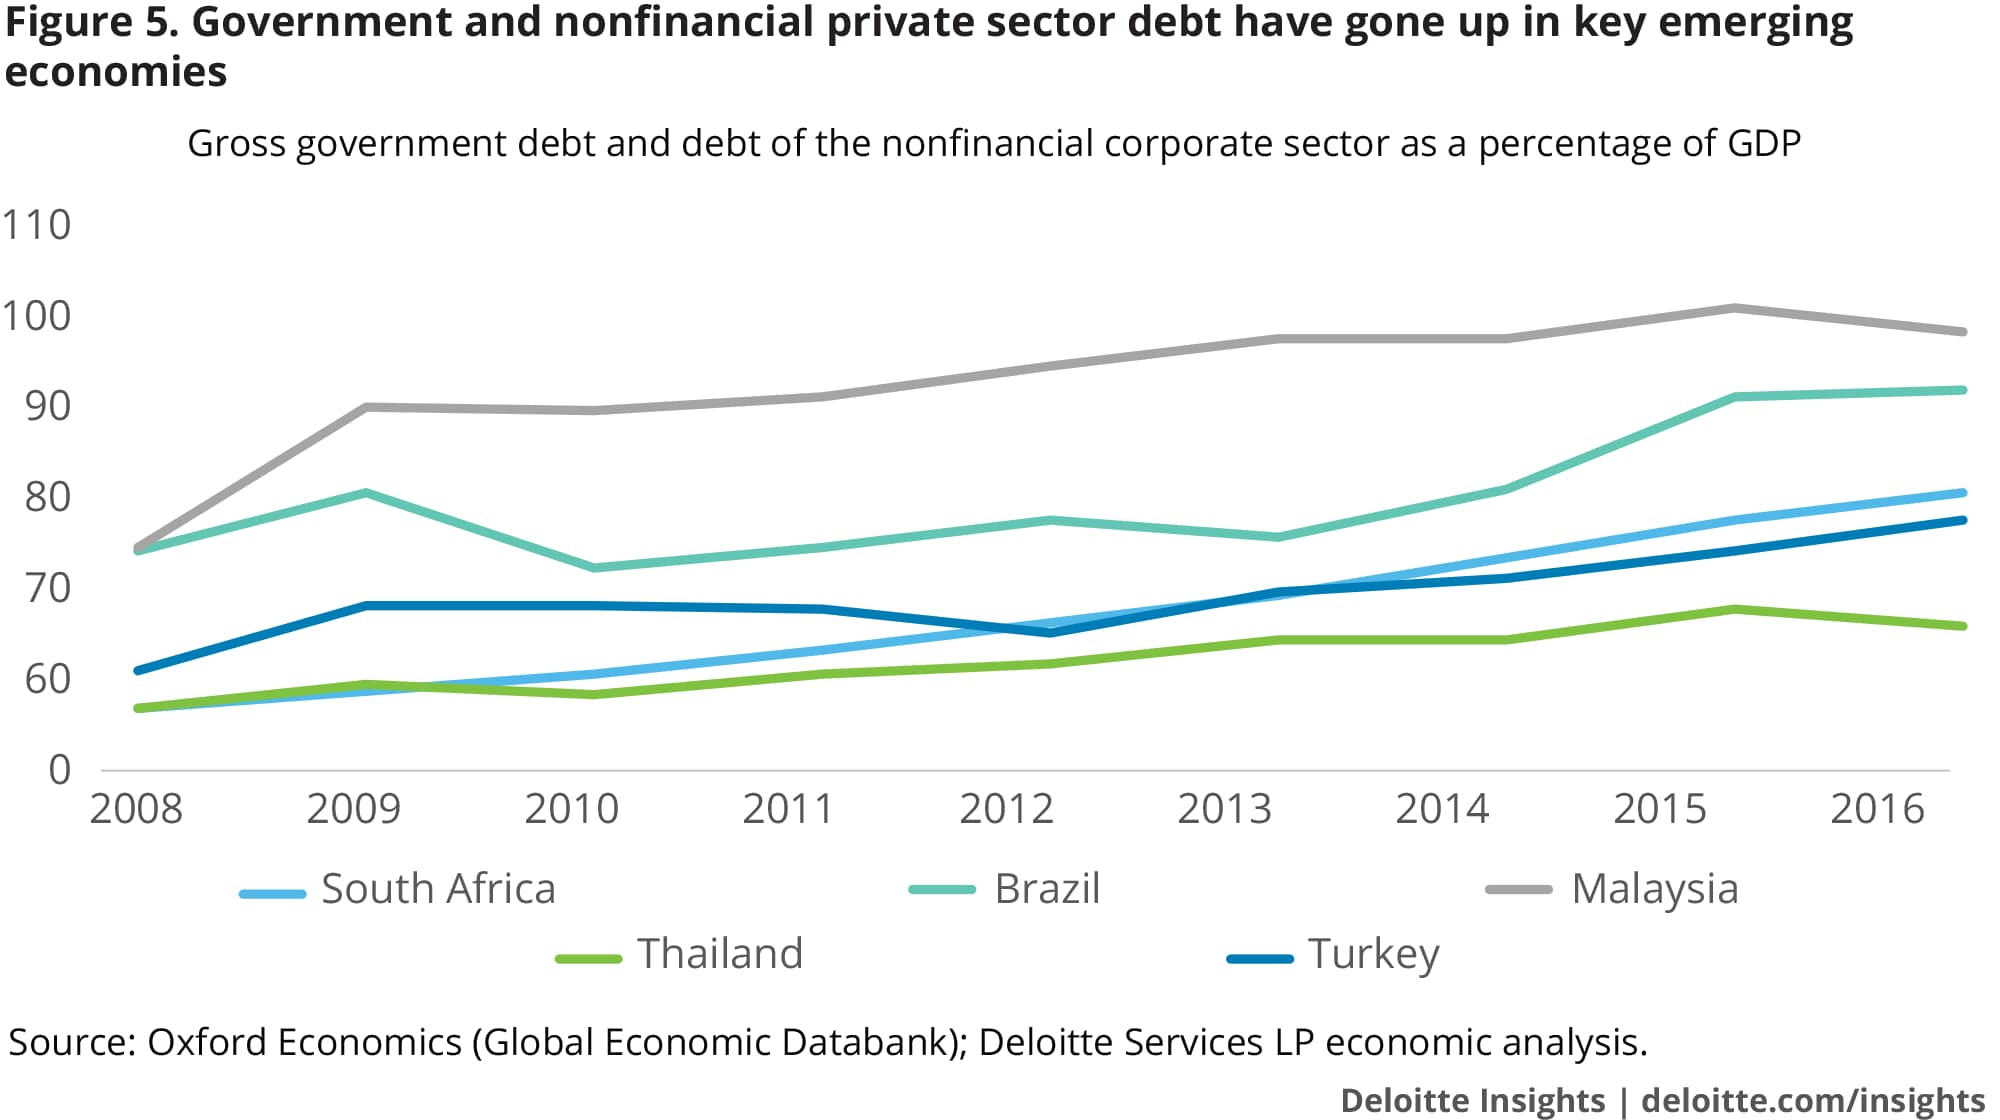 Government and nonfinancial private sector debt have gone up in key emerging economies